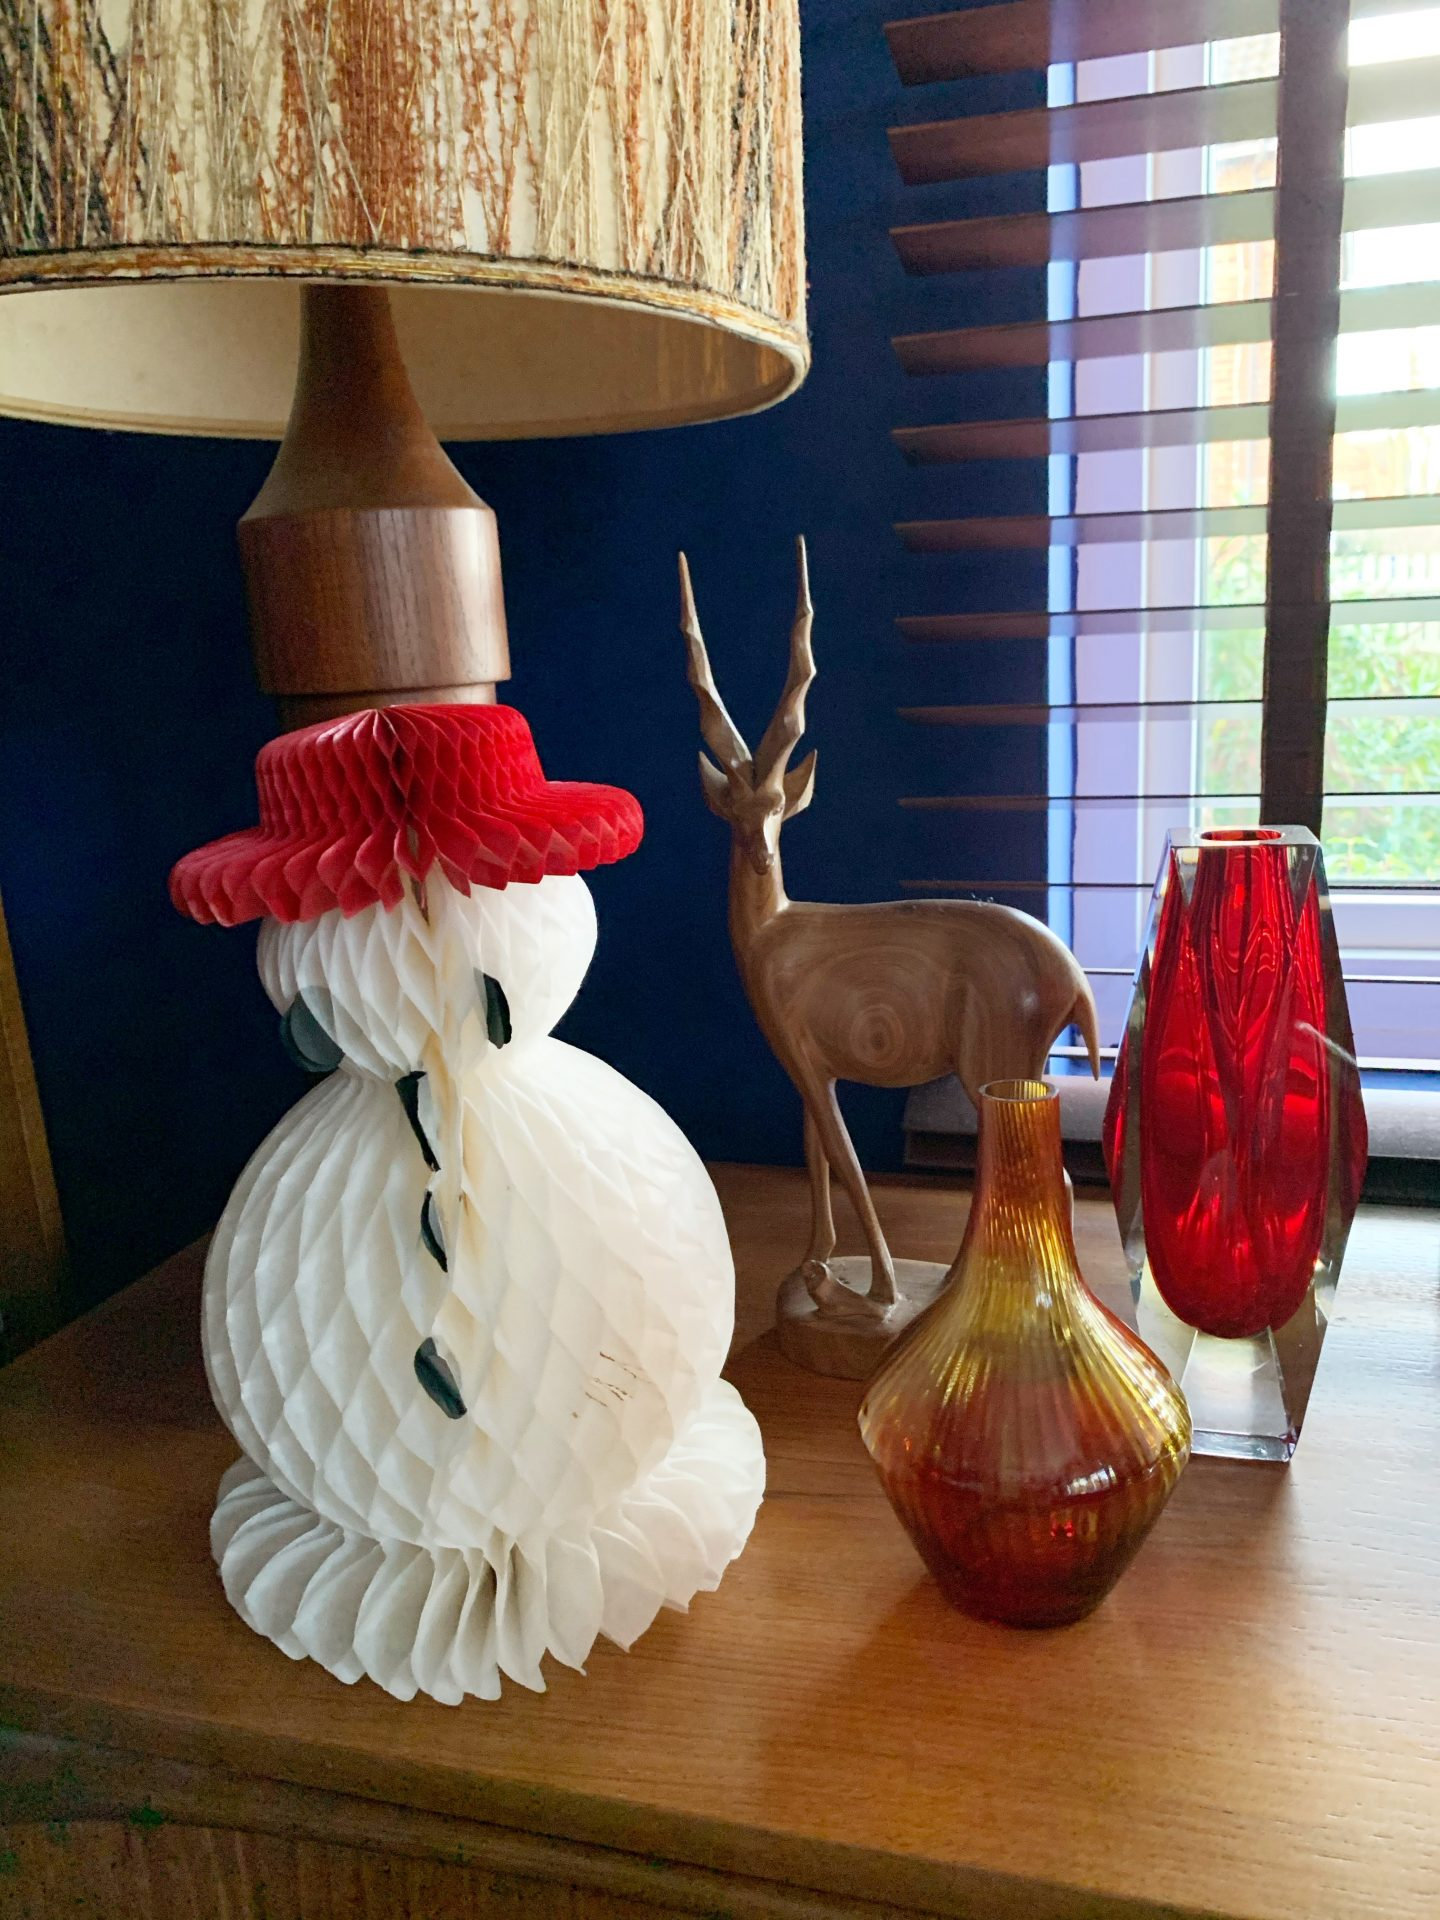 Our Vintage Christmas Decorations with honeycomb decorations